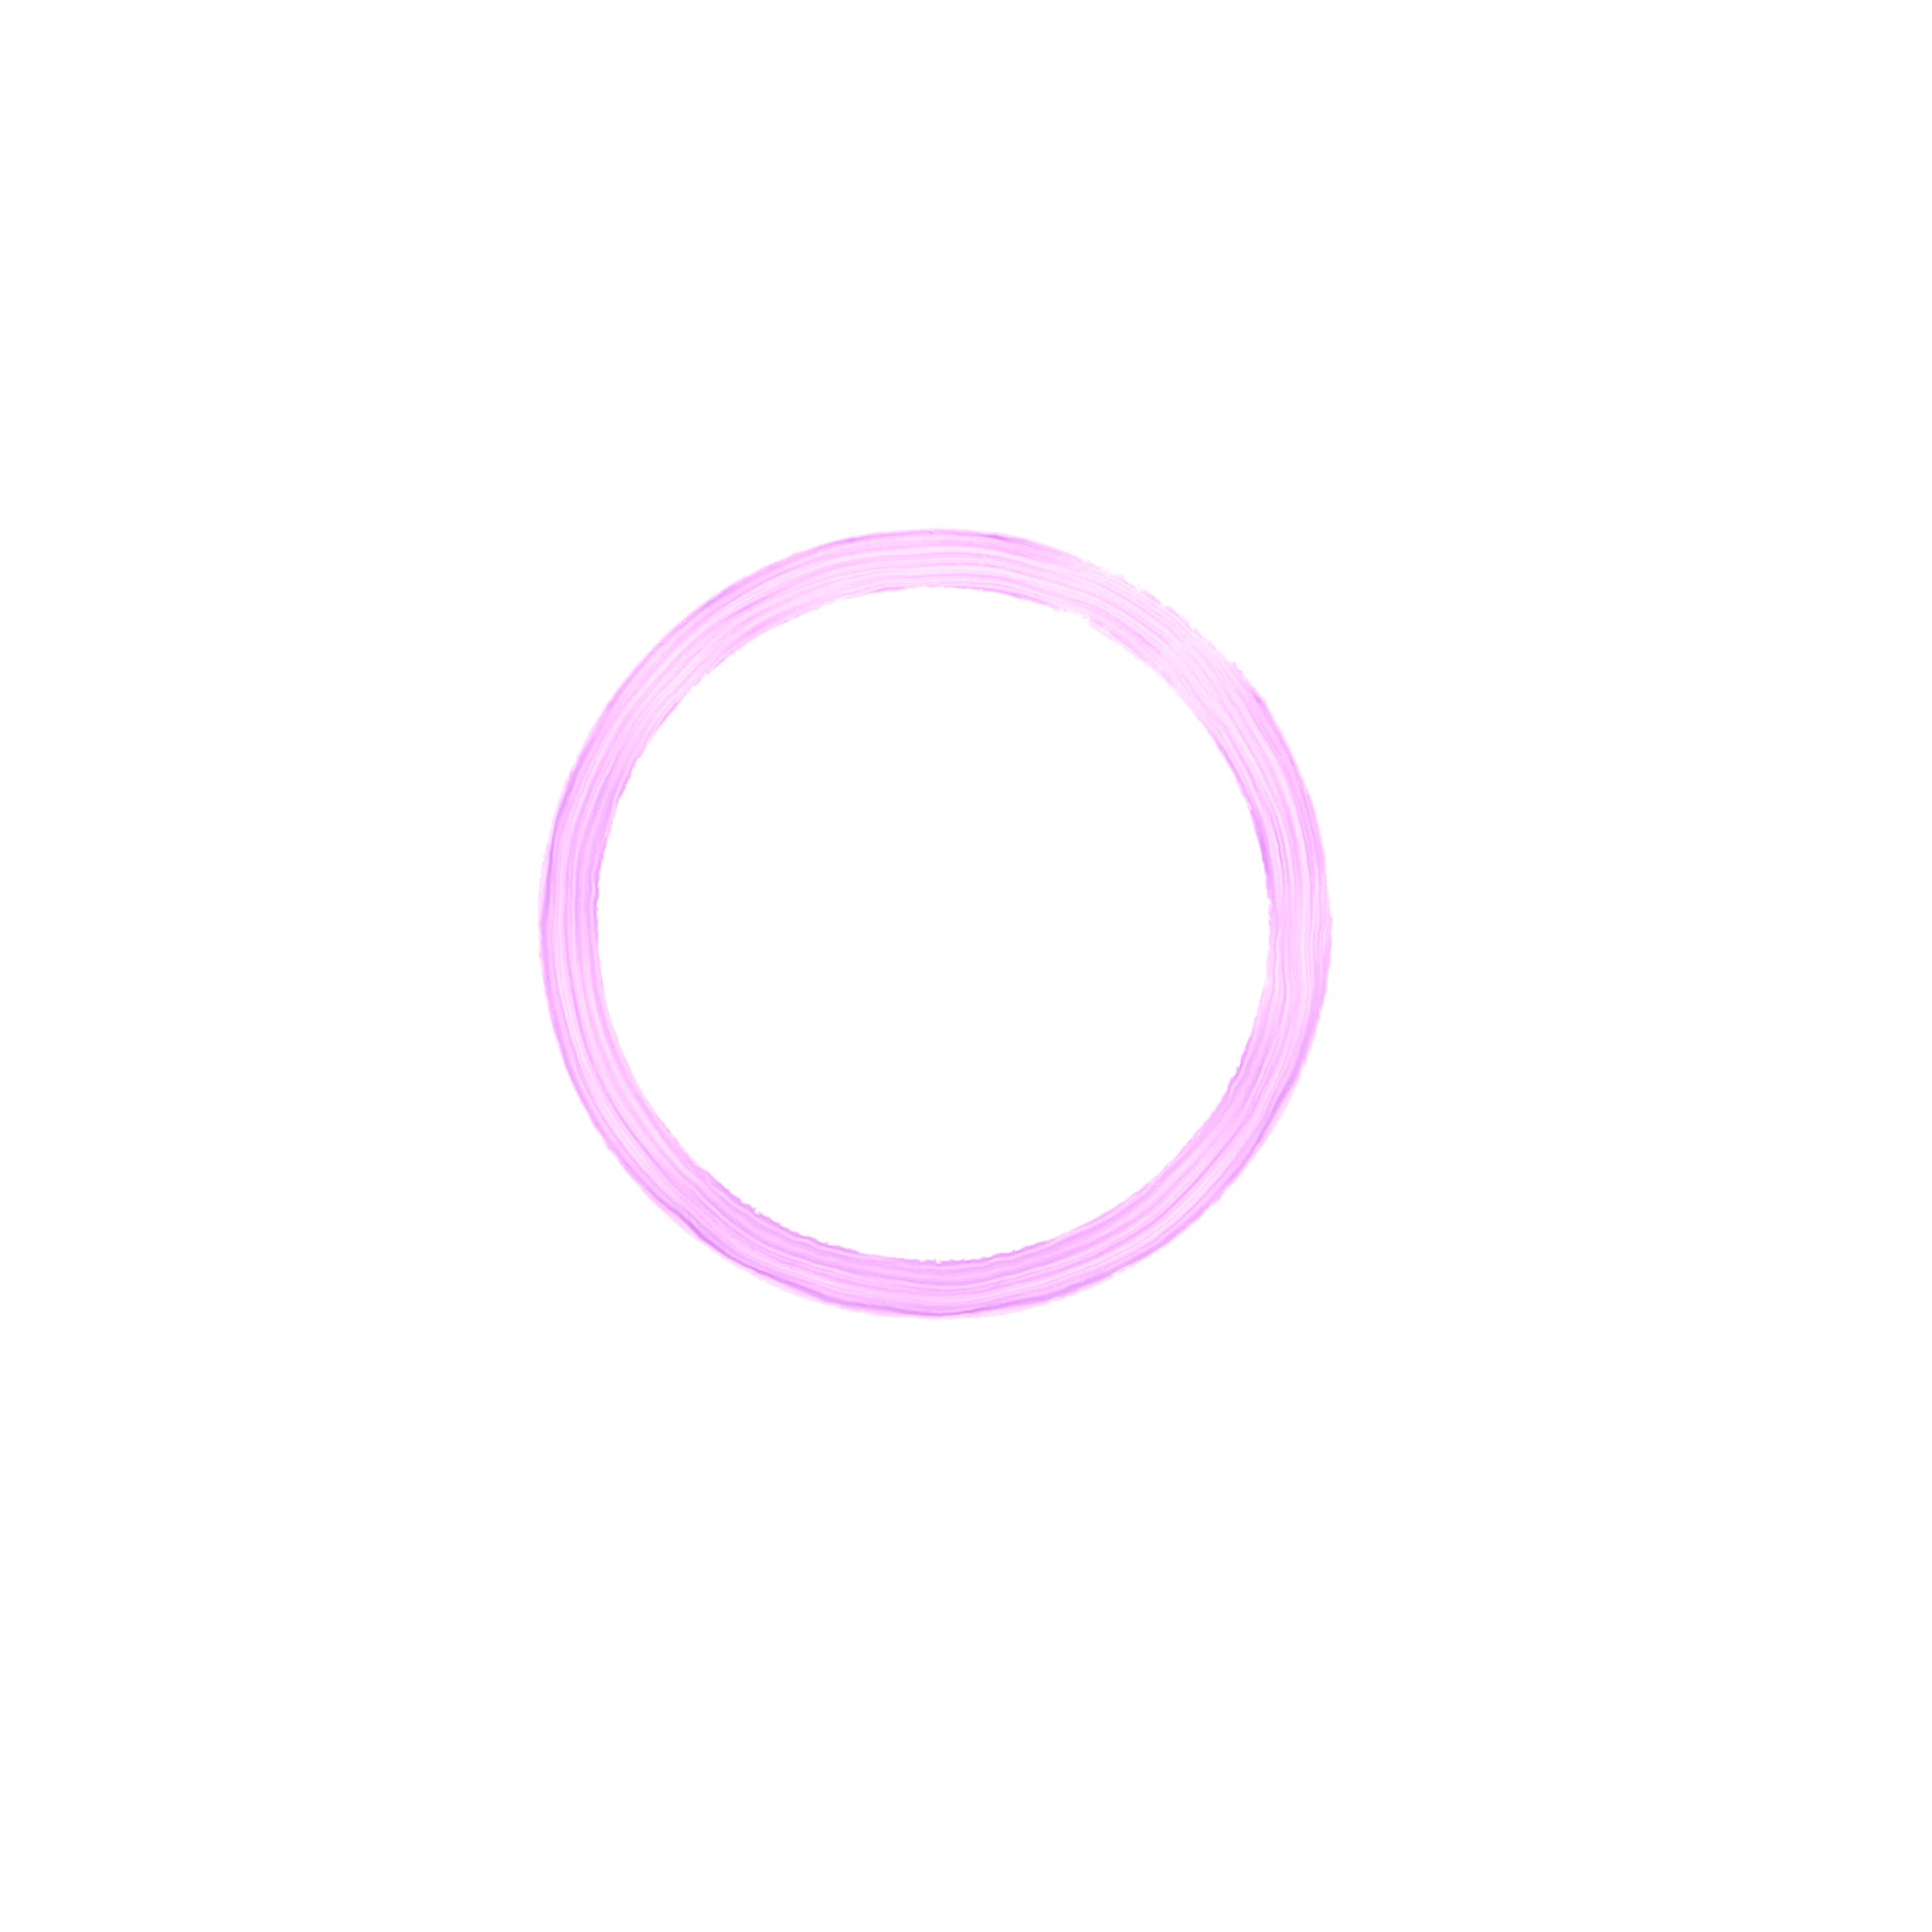 Freetoedit Pink Circle Outline Cute Remixit Circle Outline Pink Images Pink